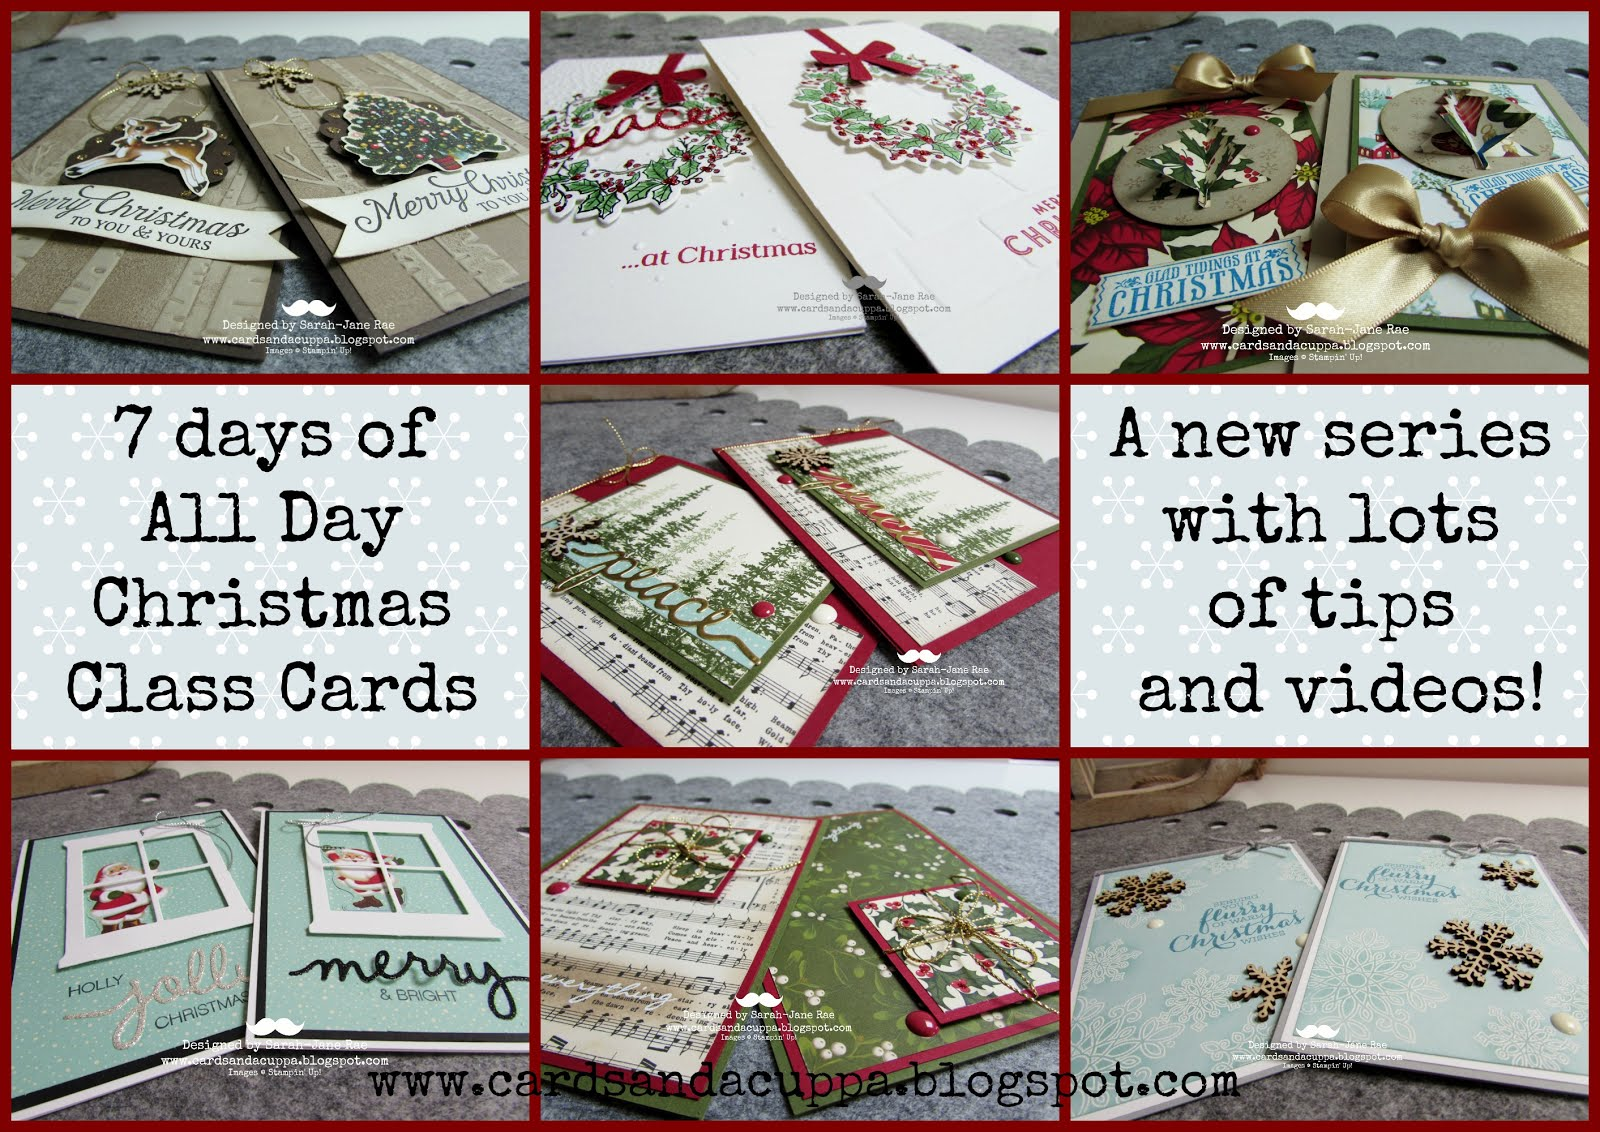 7 Days of All Day Card Class Makes